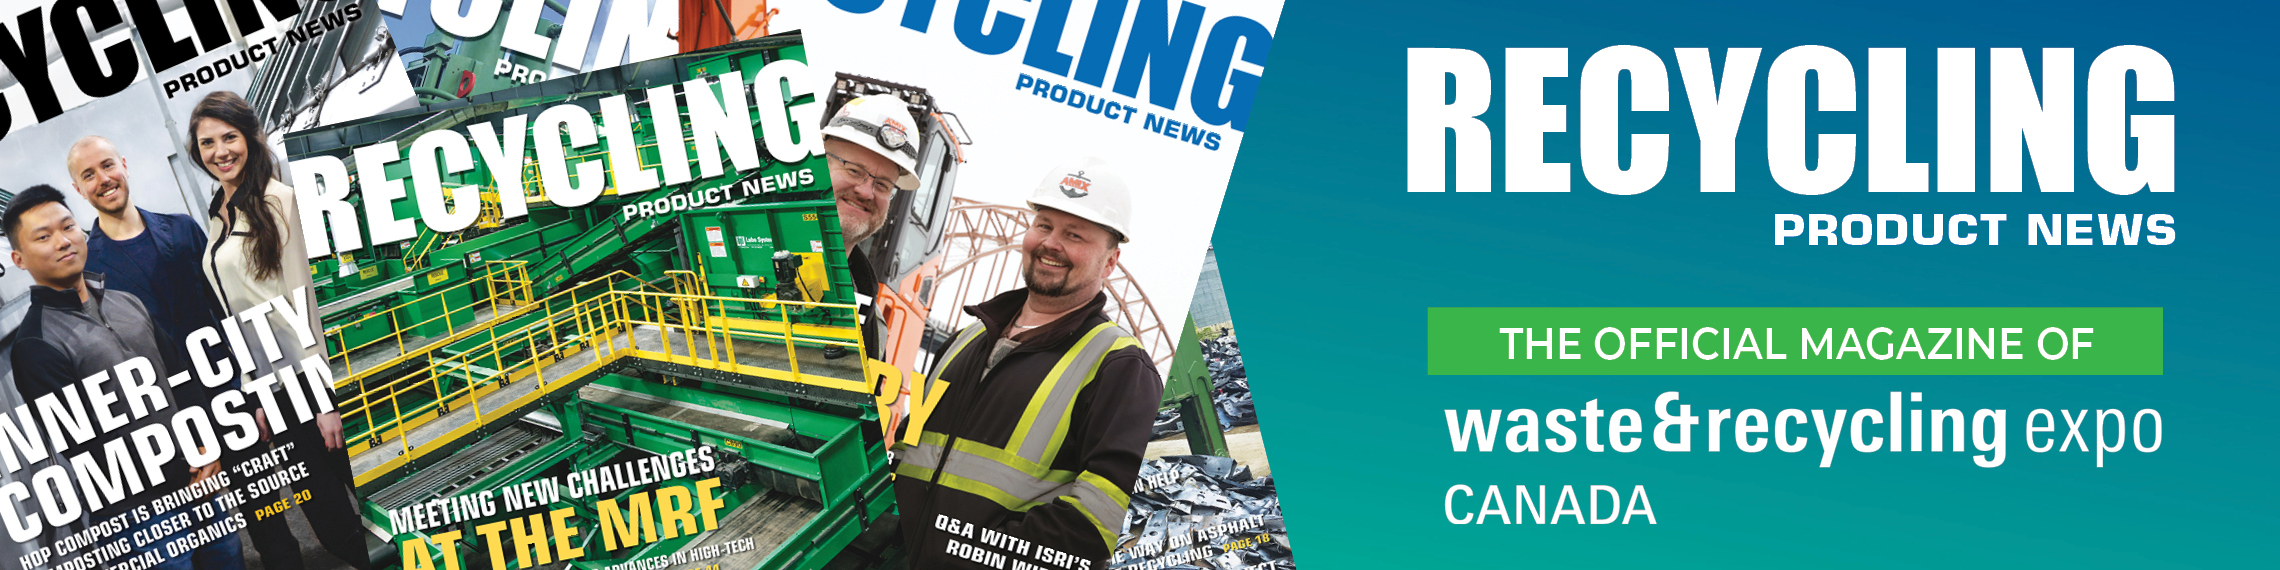 CWRE Official Magazine - Recycling Product News